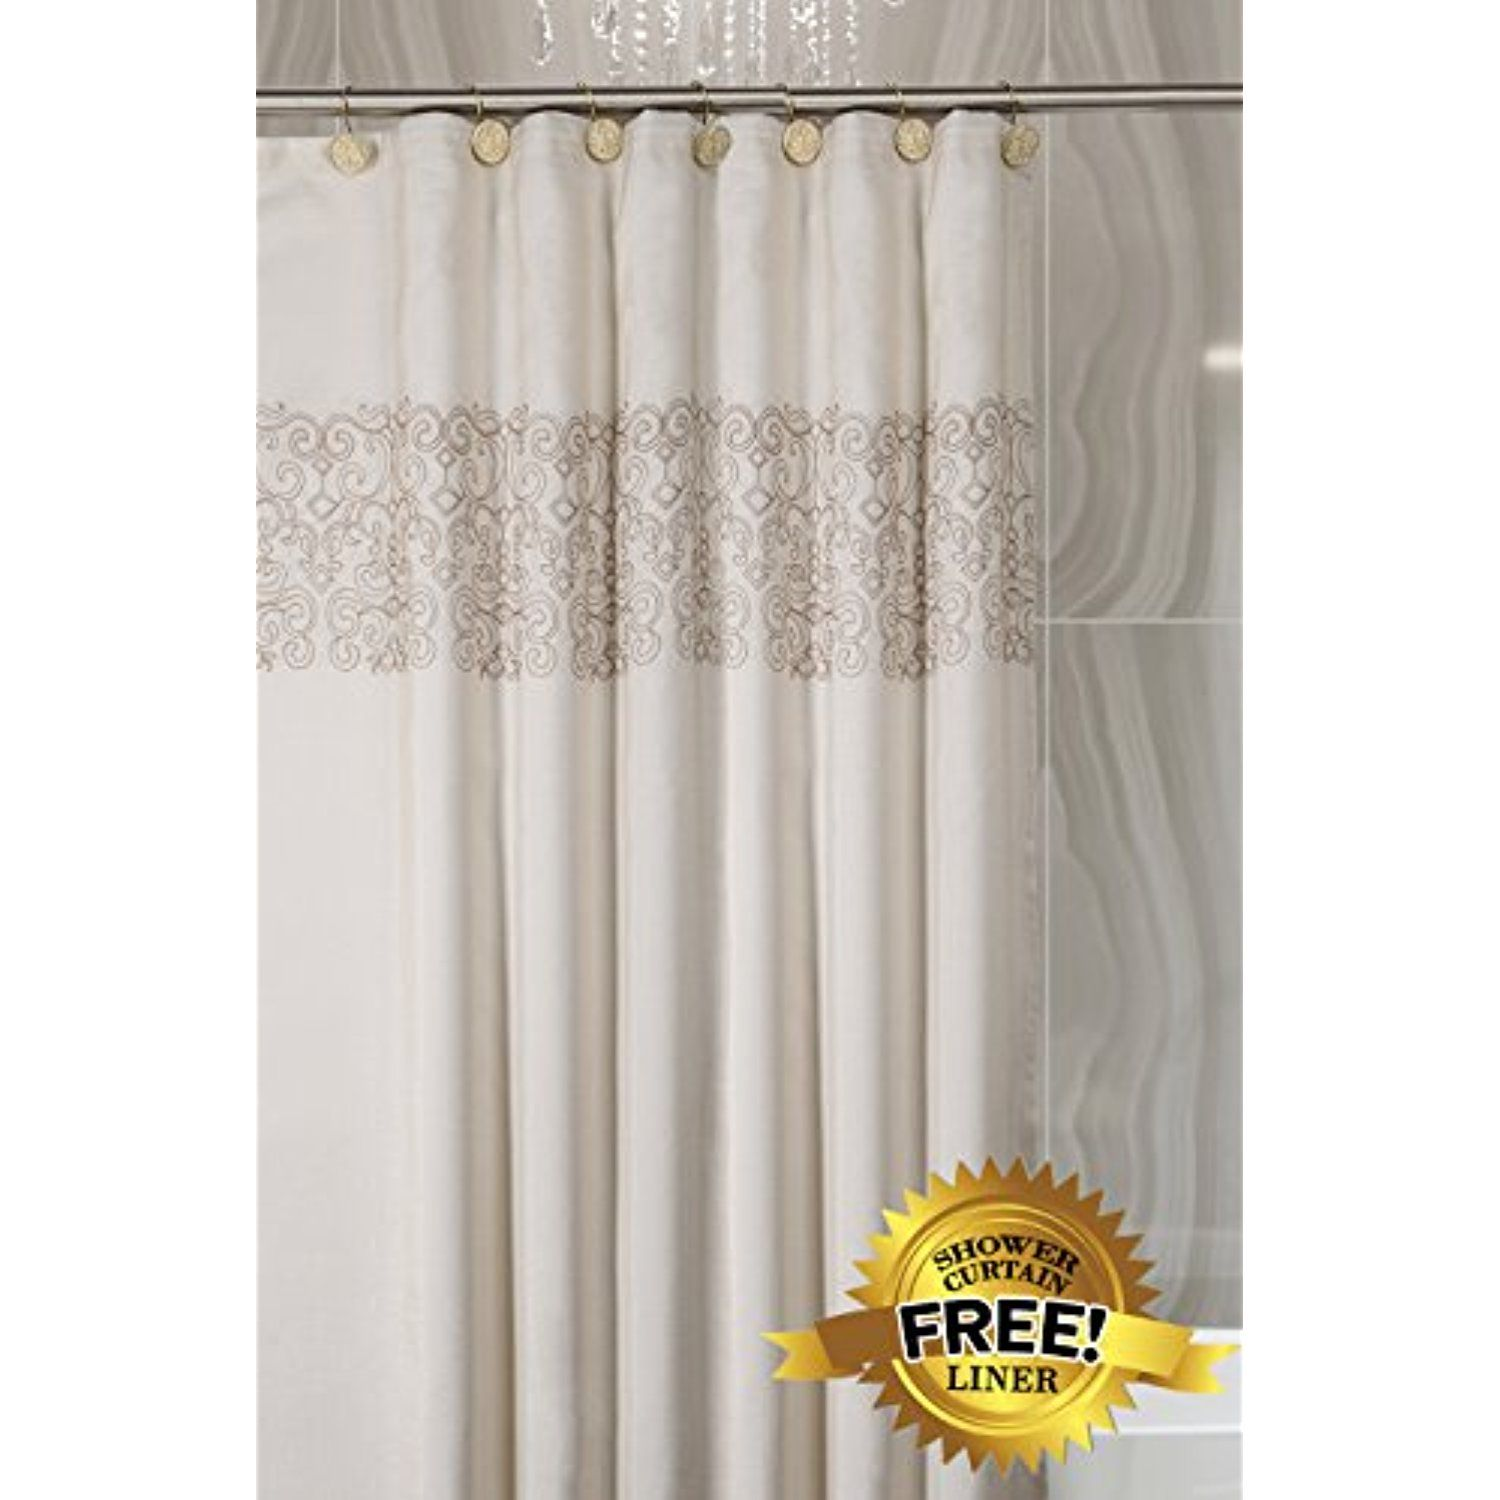 Creative scents shannon fabric decorative shower curtain soft touch